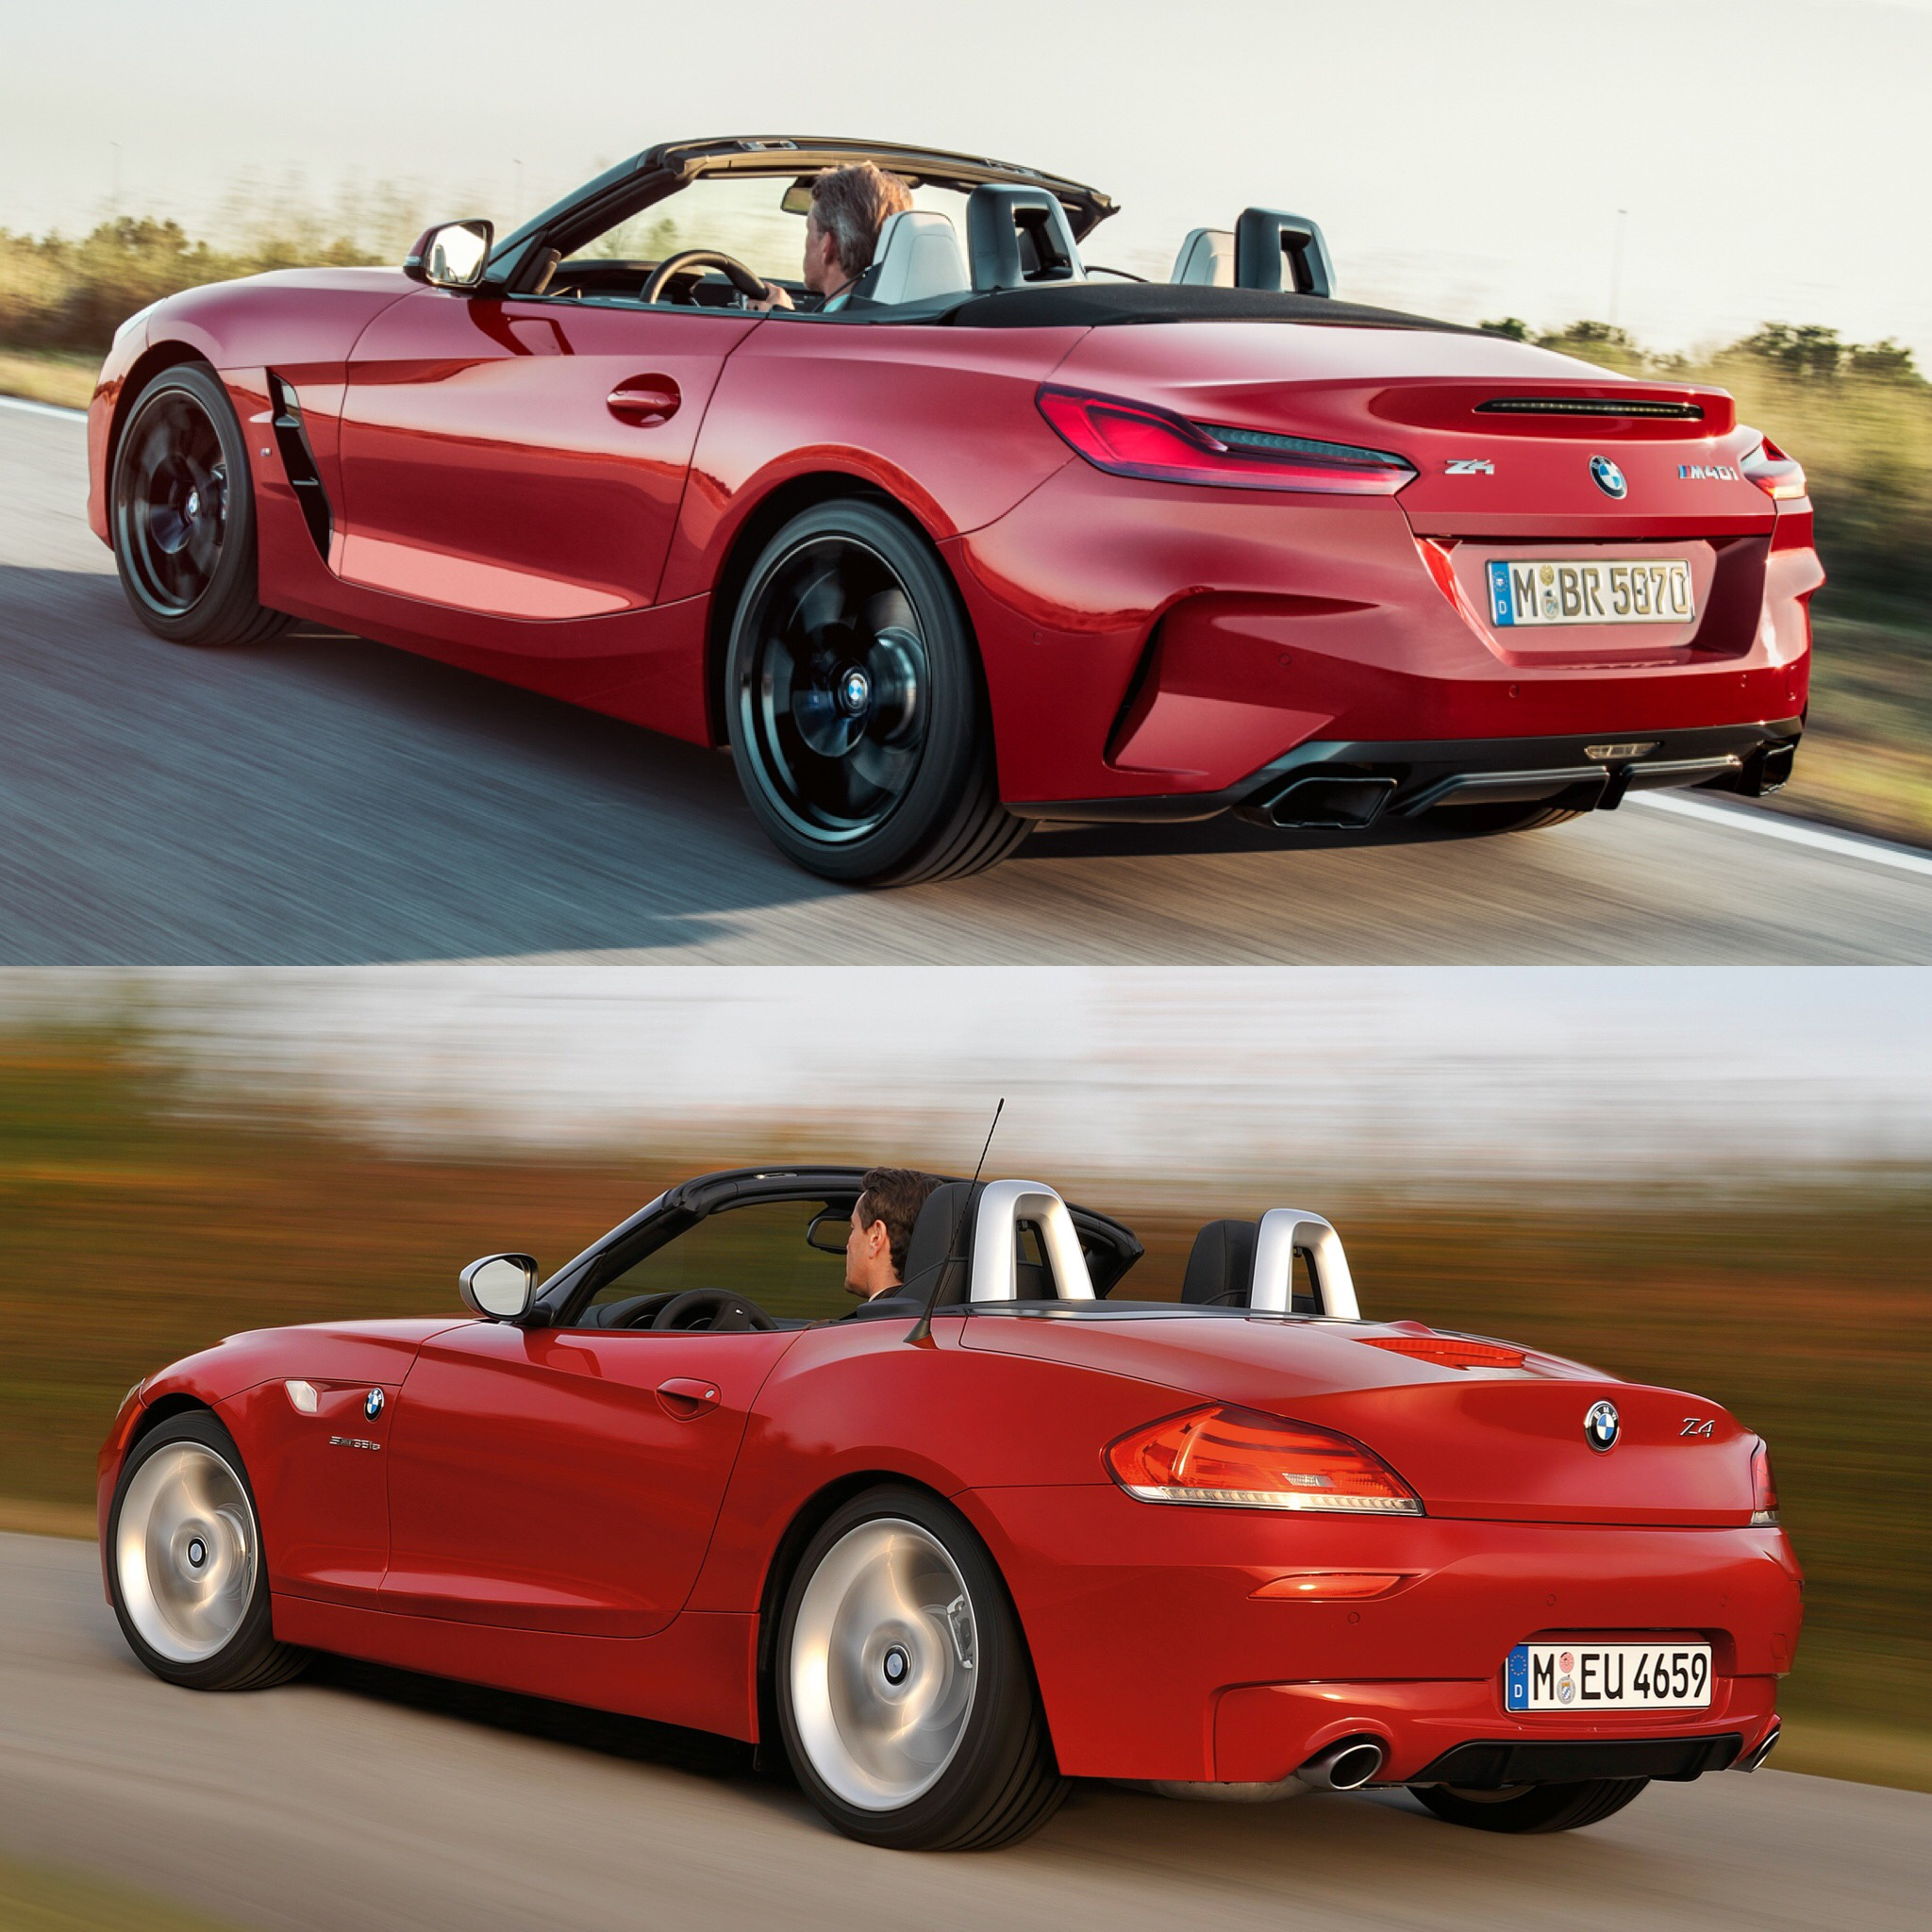 2019 Bmw Z4: Photo Comparison: G29 BMW Z4 Vs E89 BMW Z4